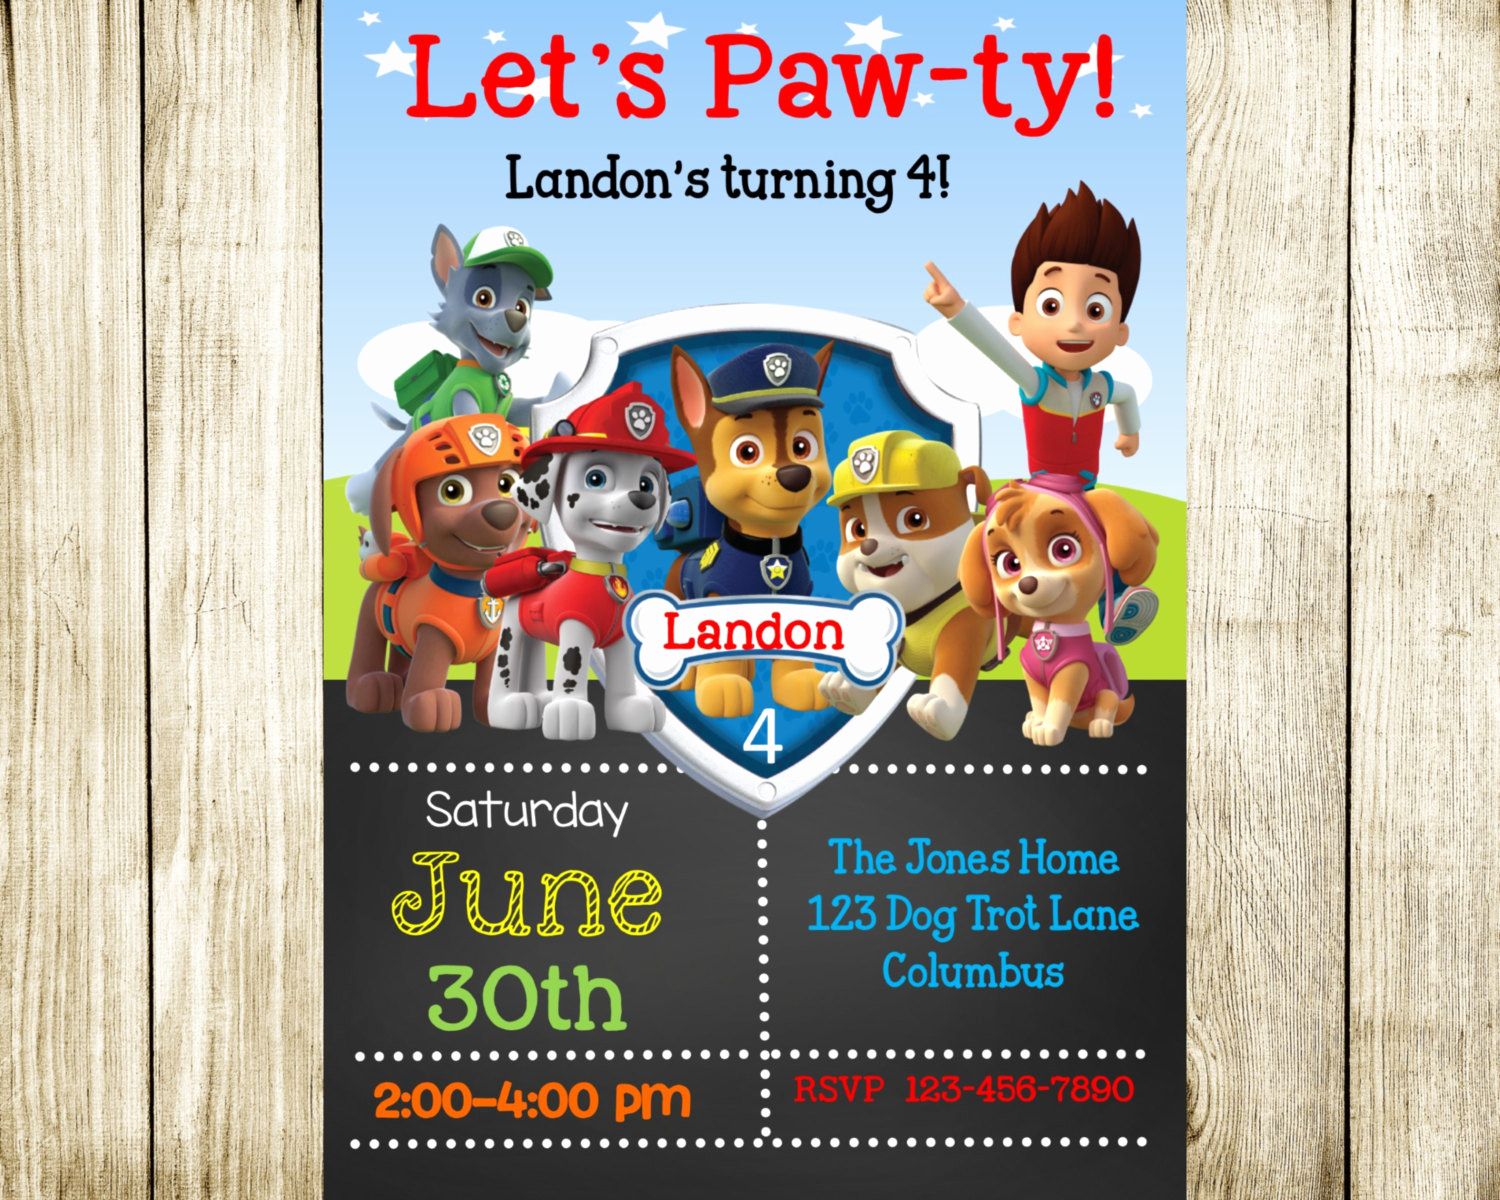 Paw Patrol Birthday Invitation Template Luxury Paw Patrol Birthday Paw Patrol Invitation by Needmoredesigns